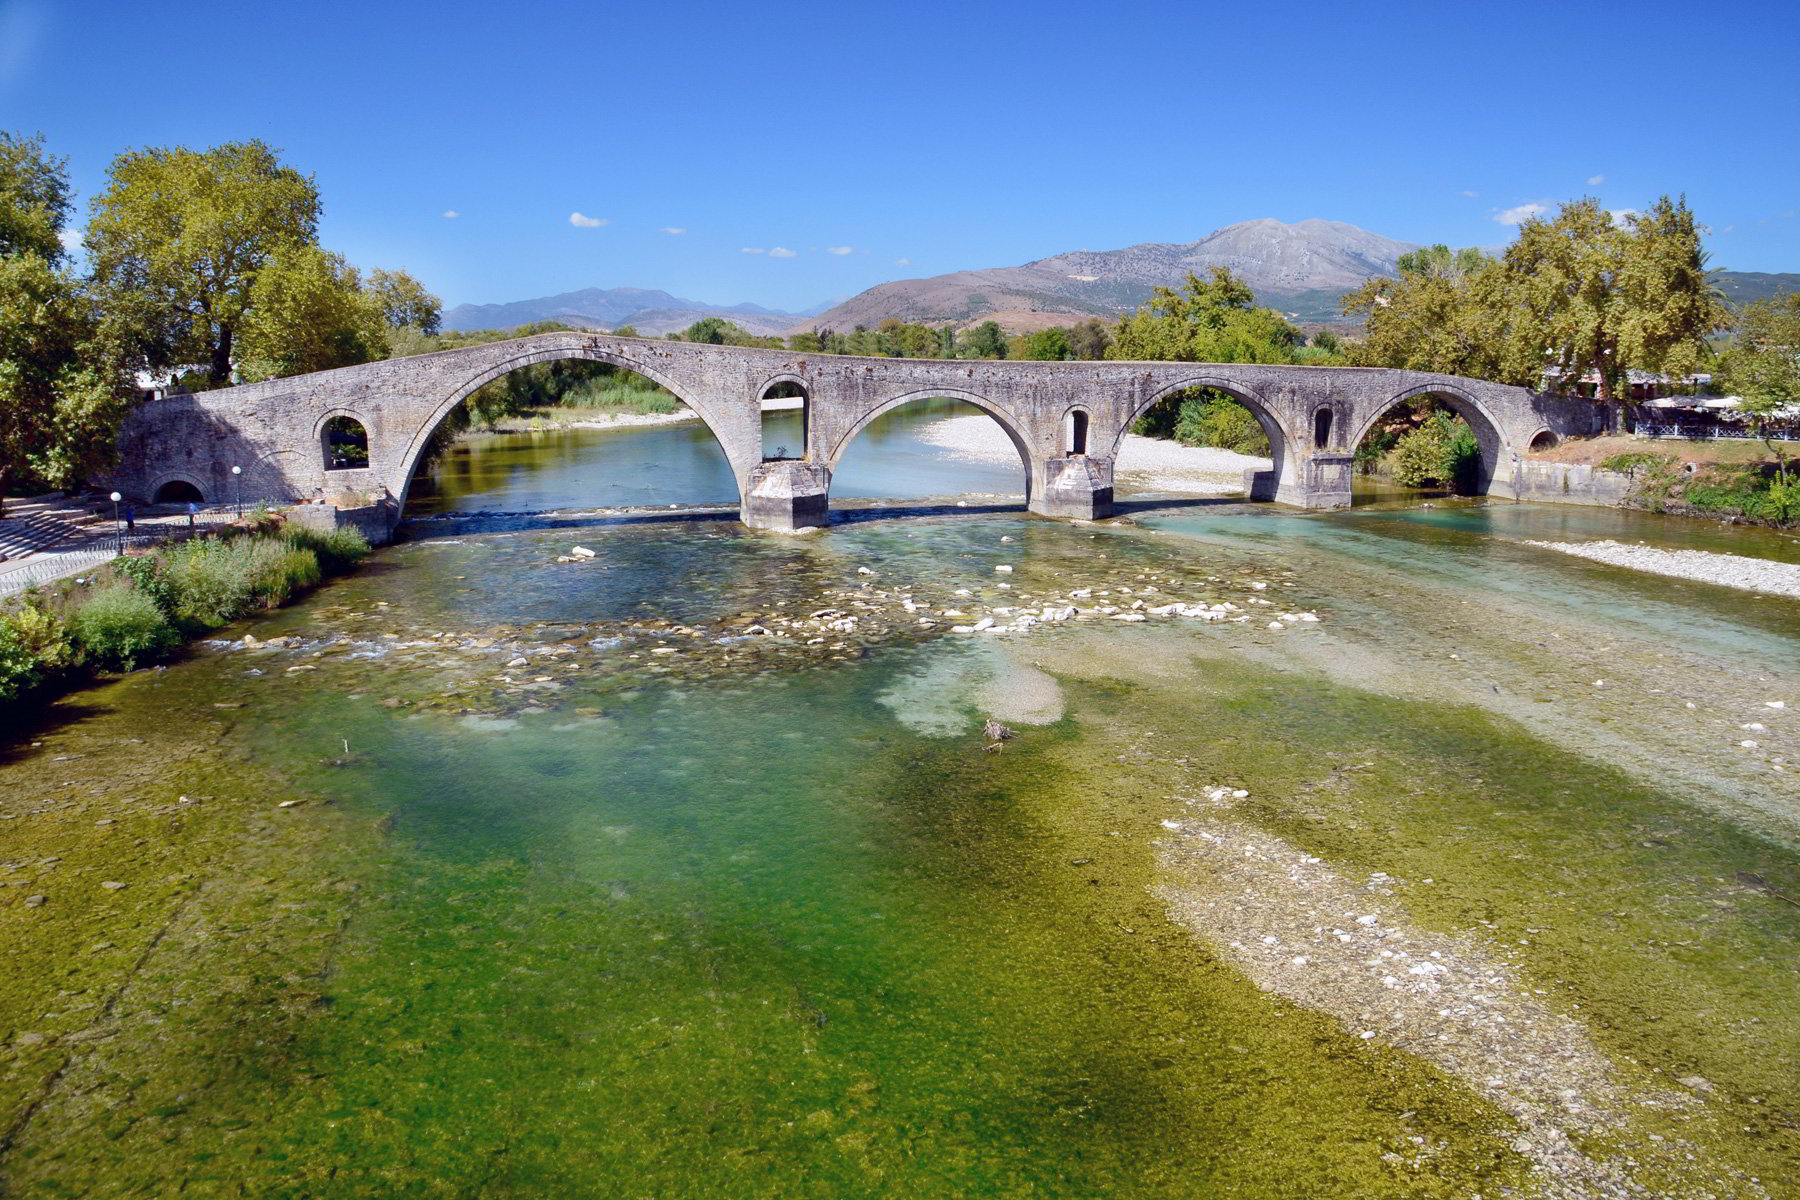 Arta, Greece - Monterrasol small group tours to Arta, Greece. Travel agency offers small group car tours to see Arta in Greece. Order small group tour to Arta with departure date on request.